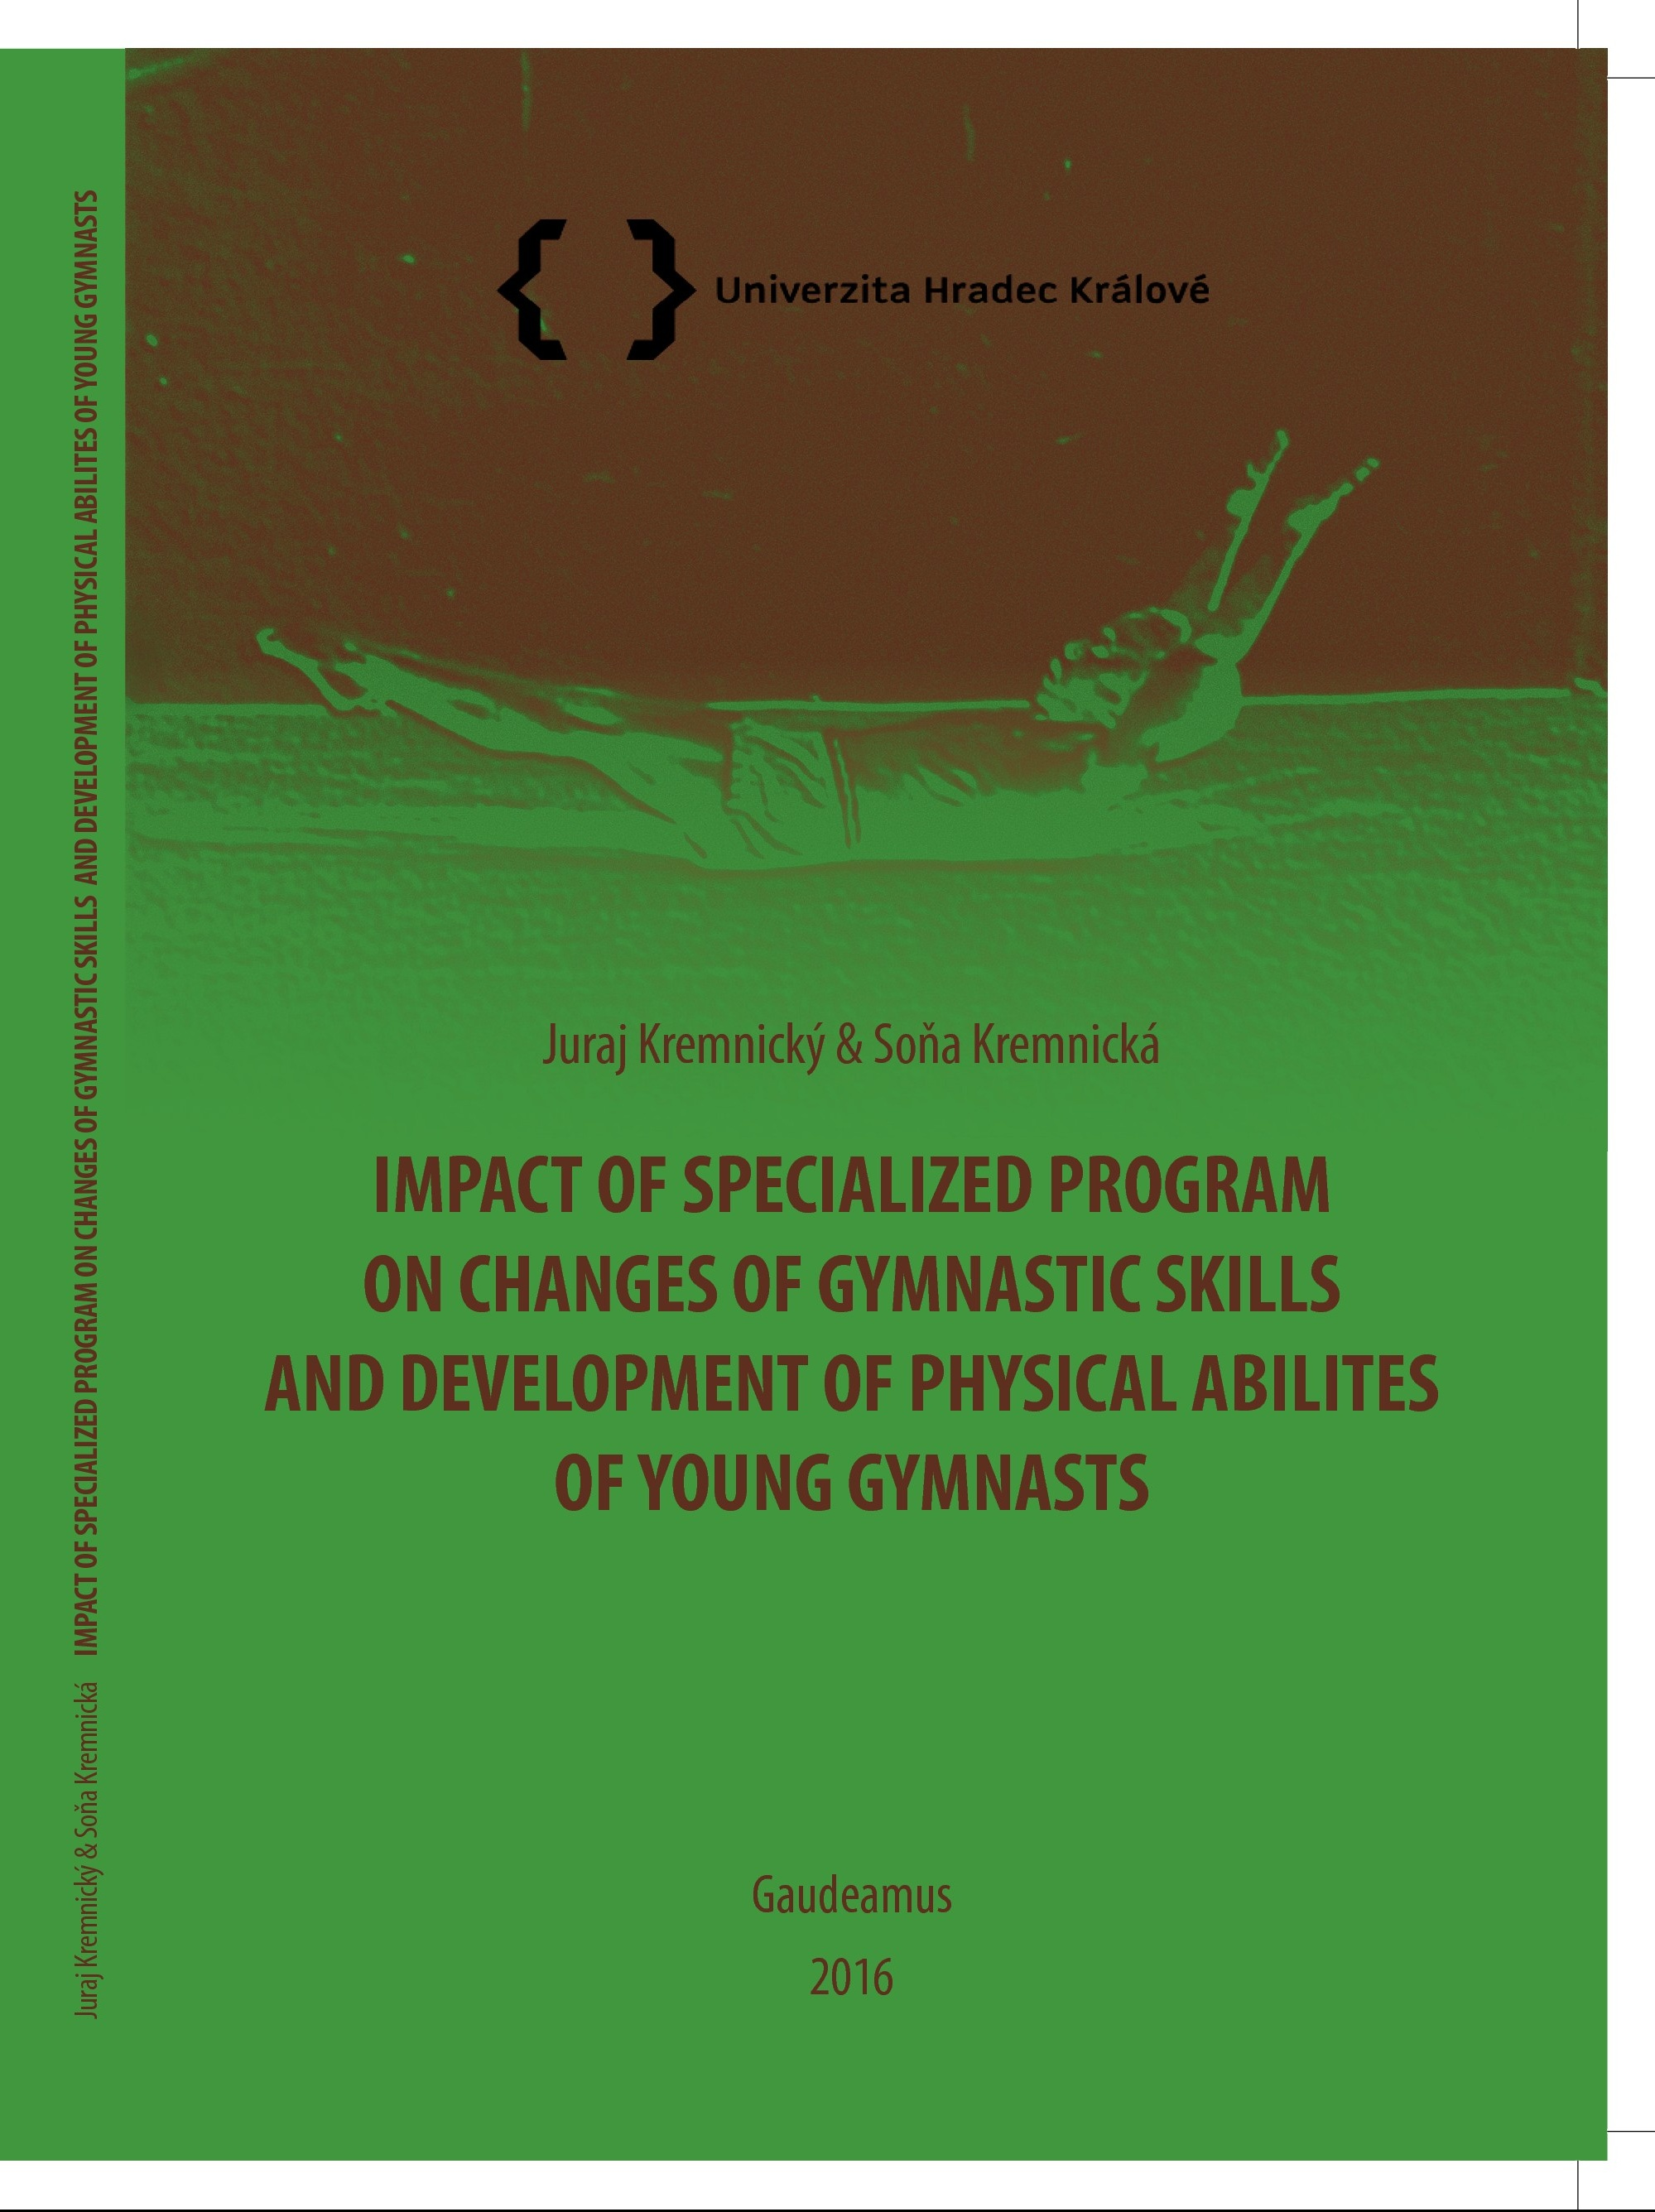 Impact of Specialized Program on Chages of Gymnastic Skills and Development of Physical Abilites of Young Gymnasts